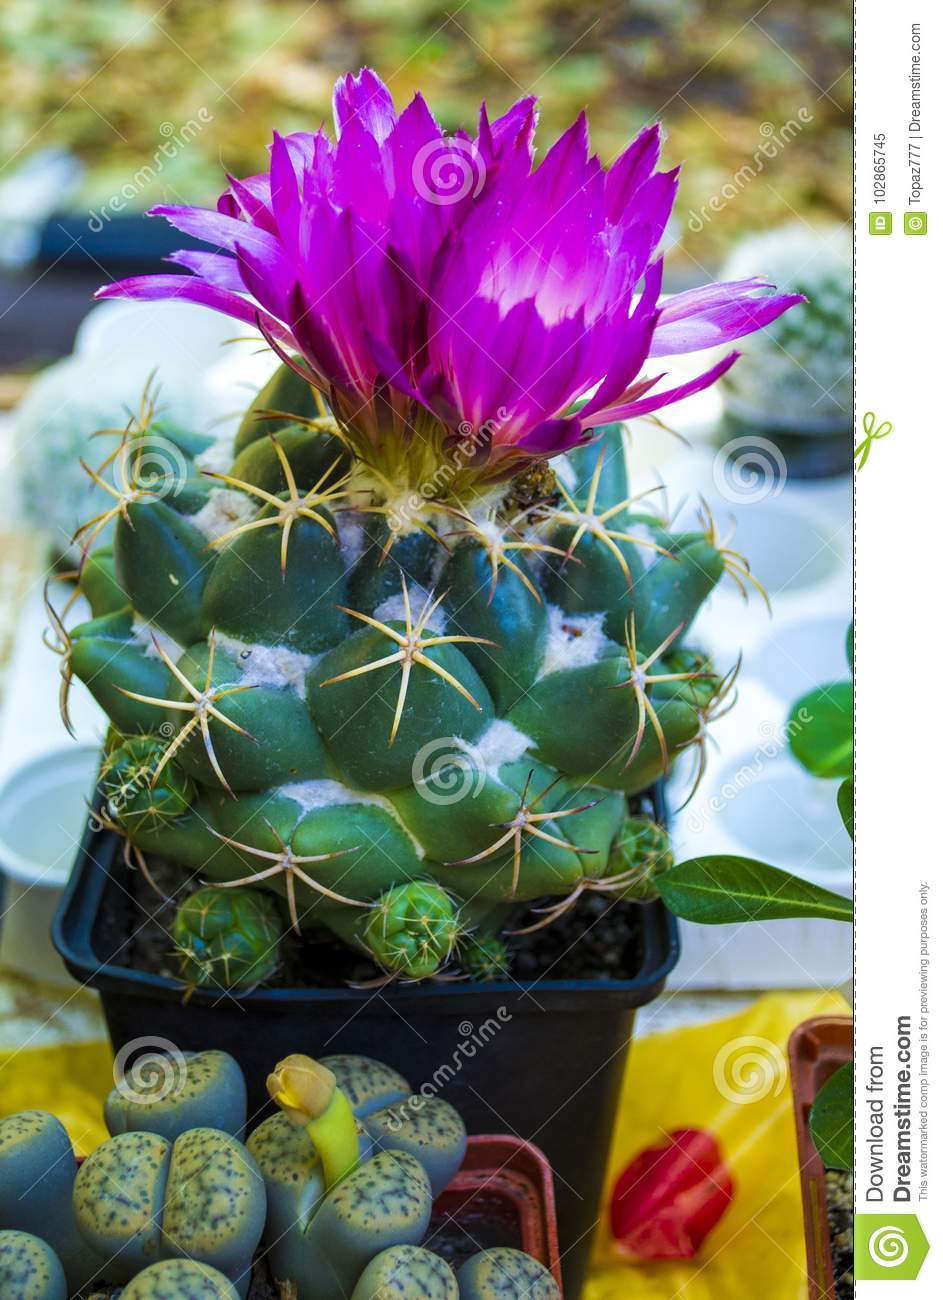 Flowering Cactus Pink Cactus Flowers Stock Image Image Of Cactus